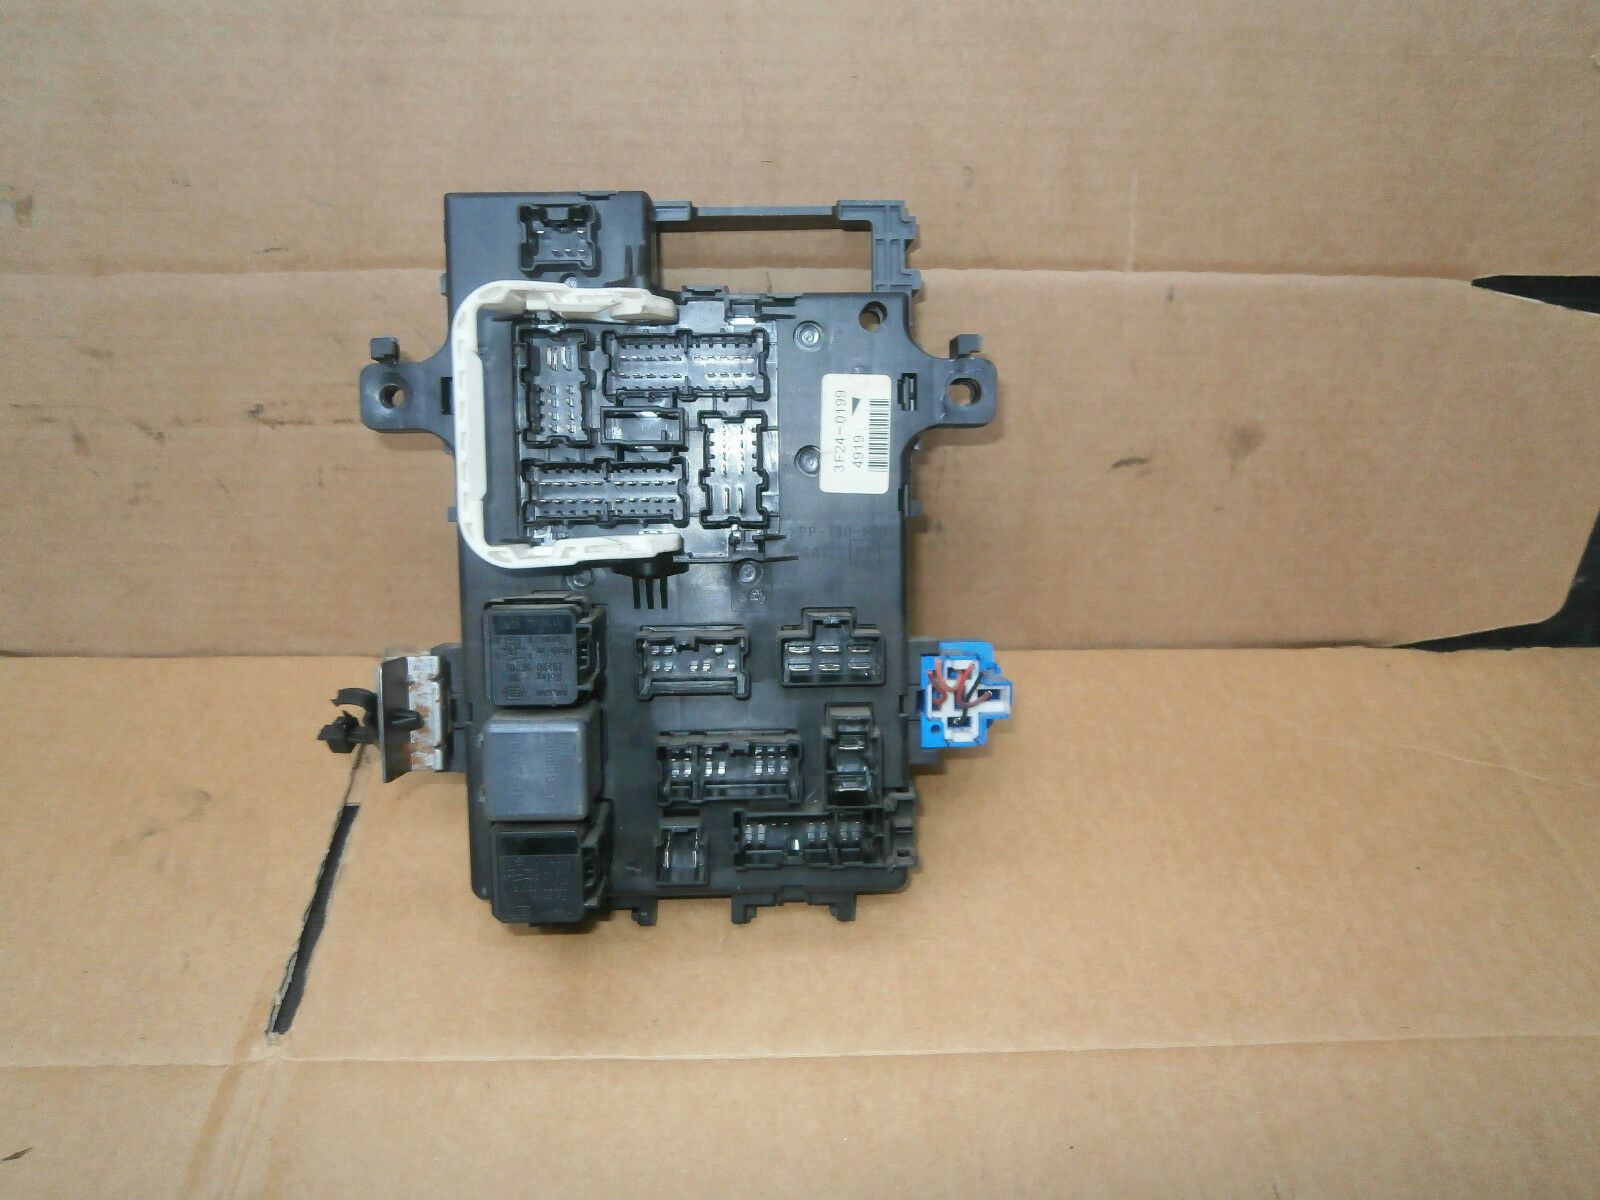 Nissan Terrano 2003 Interior Fuse Box 3f24 0199 5995 Picclick Uk Ford 6610 1 Of 1only Available